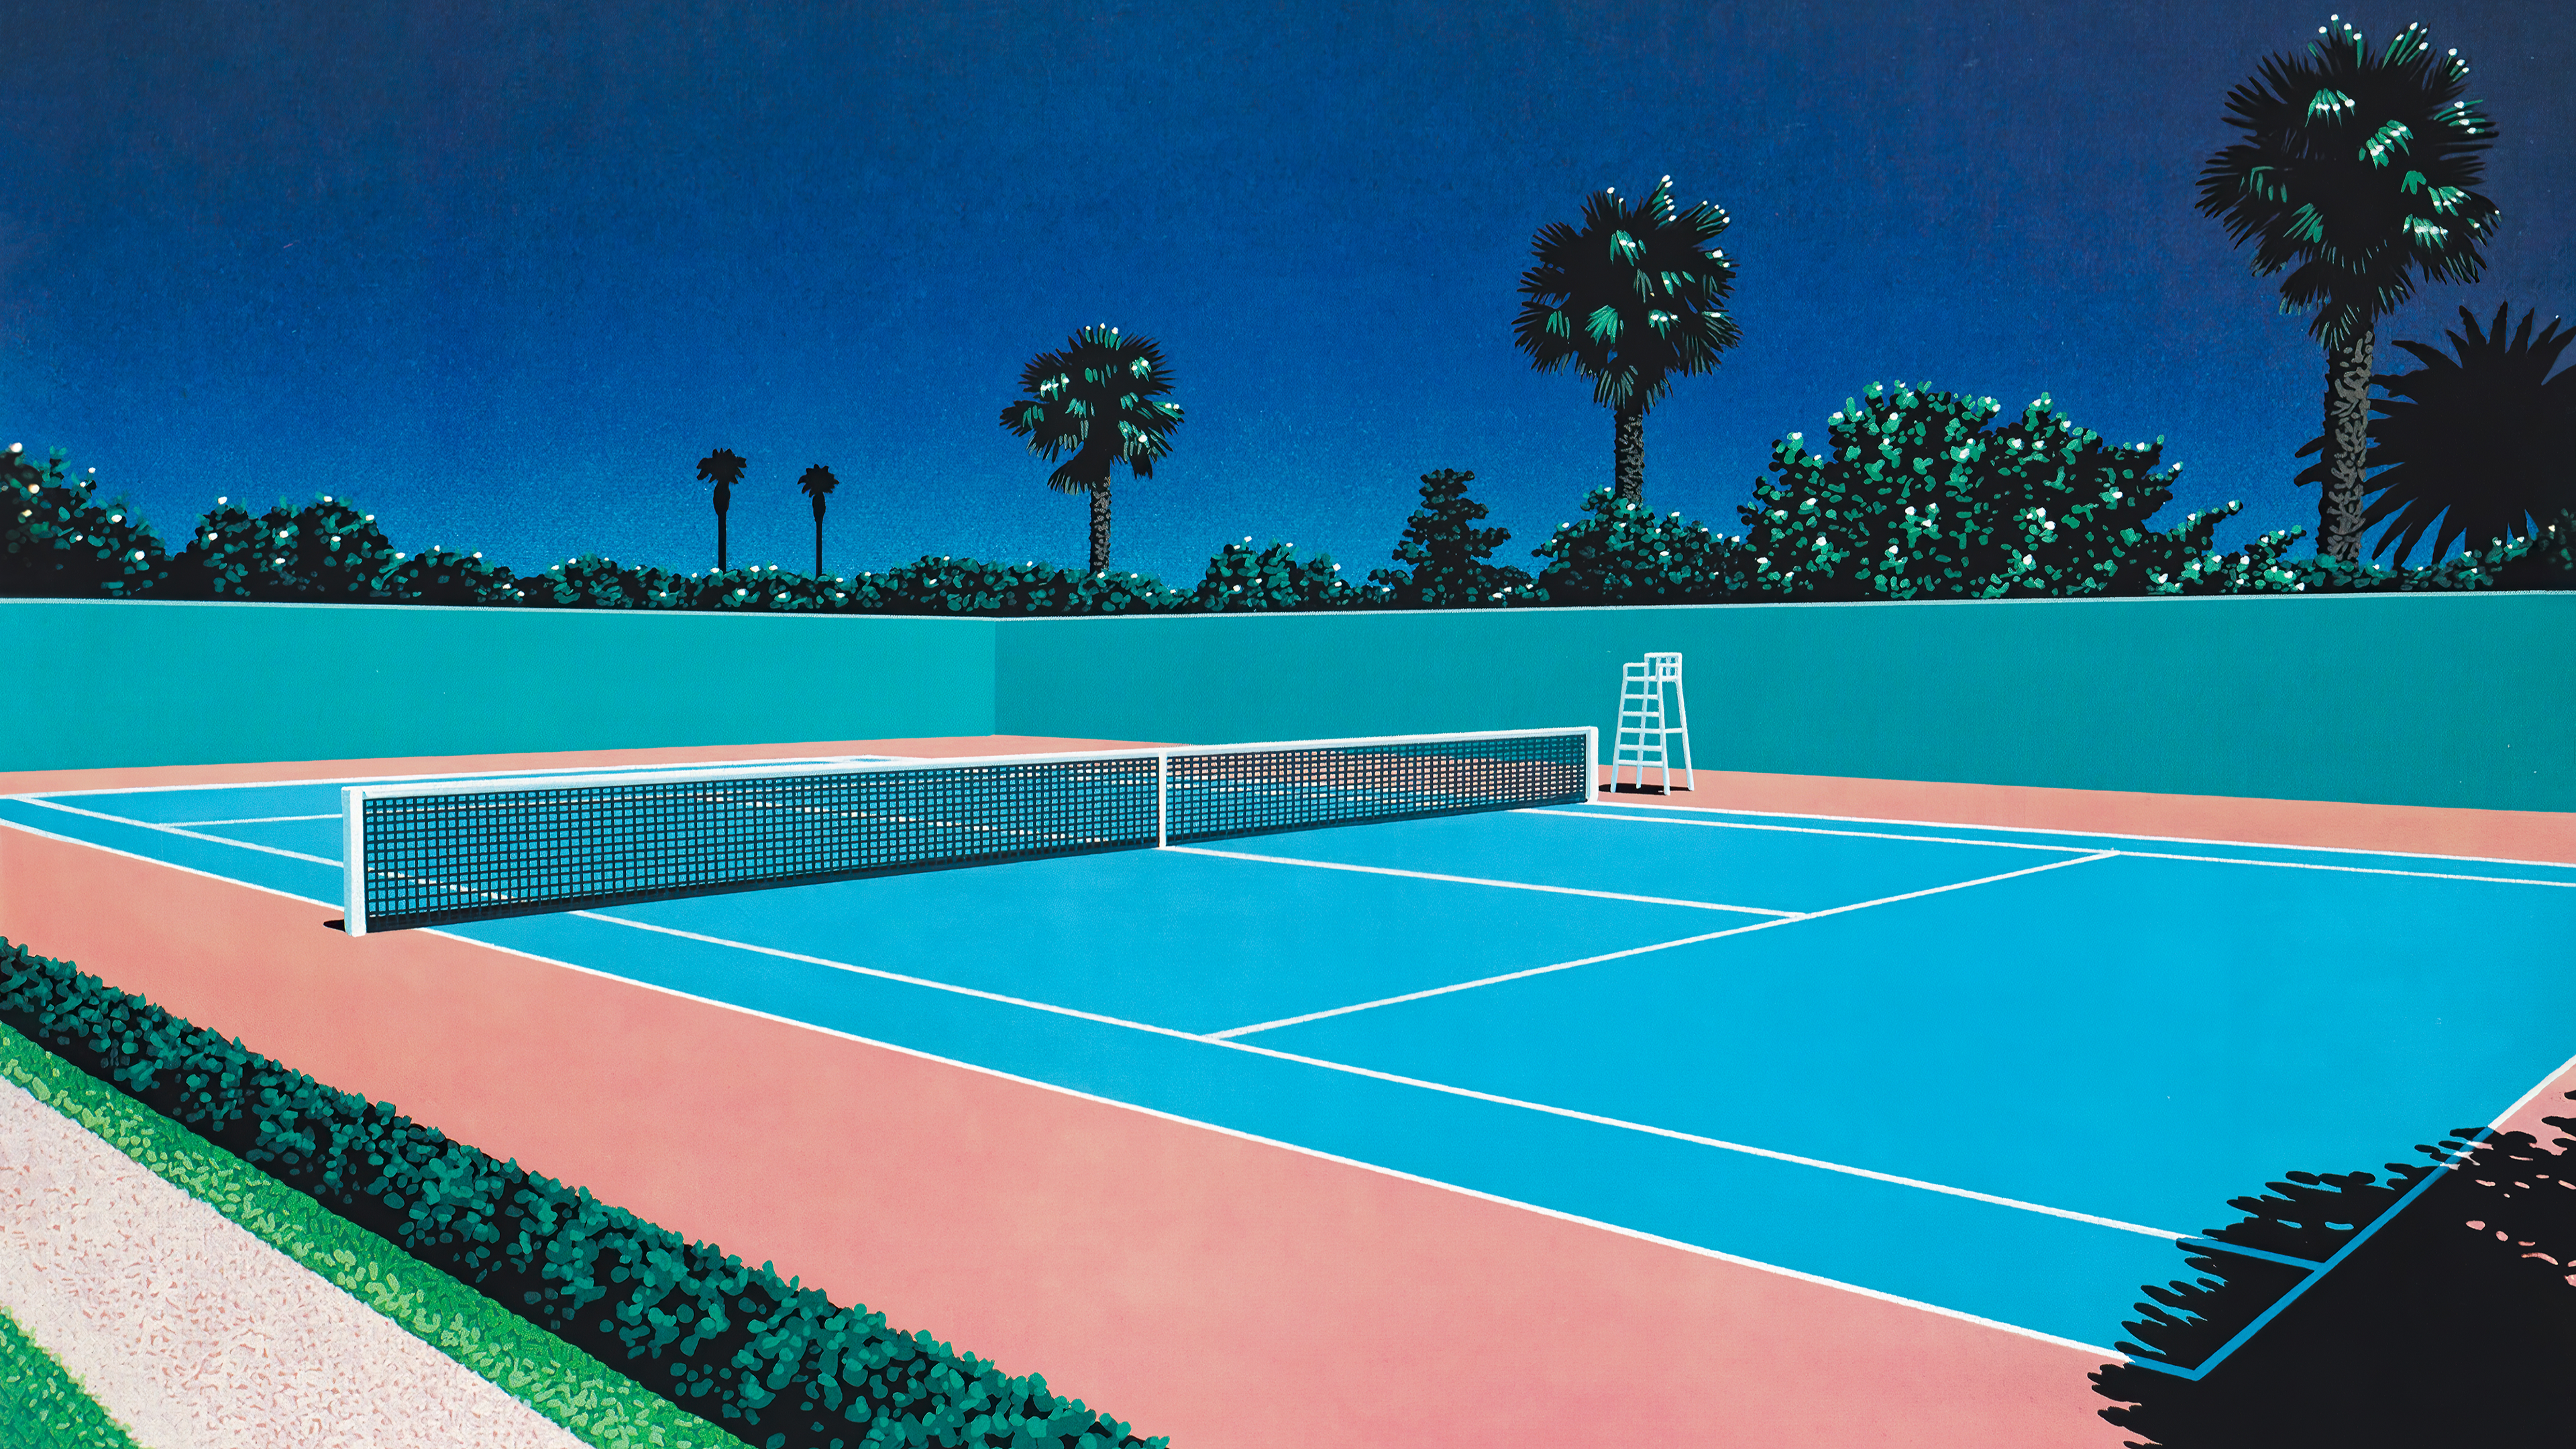 Tennis Court By Hiroshi Nagai 3840x2160 Tennis Court Desktop Background Images Background Images